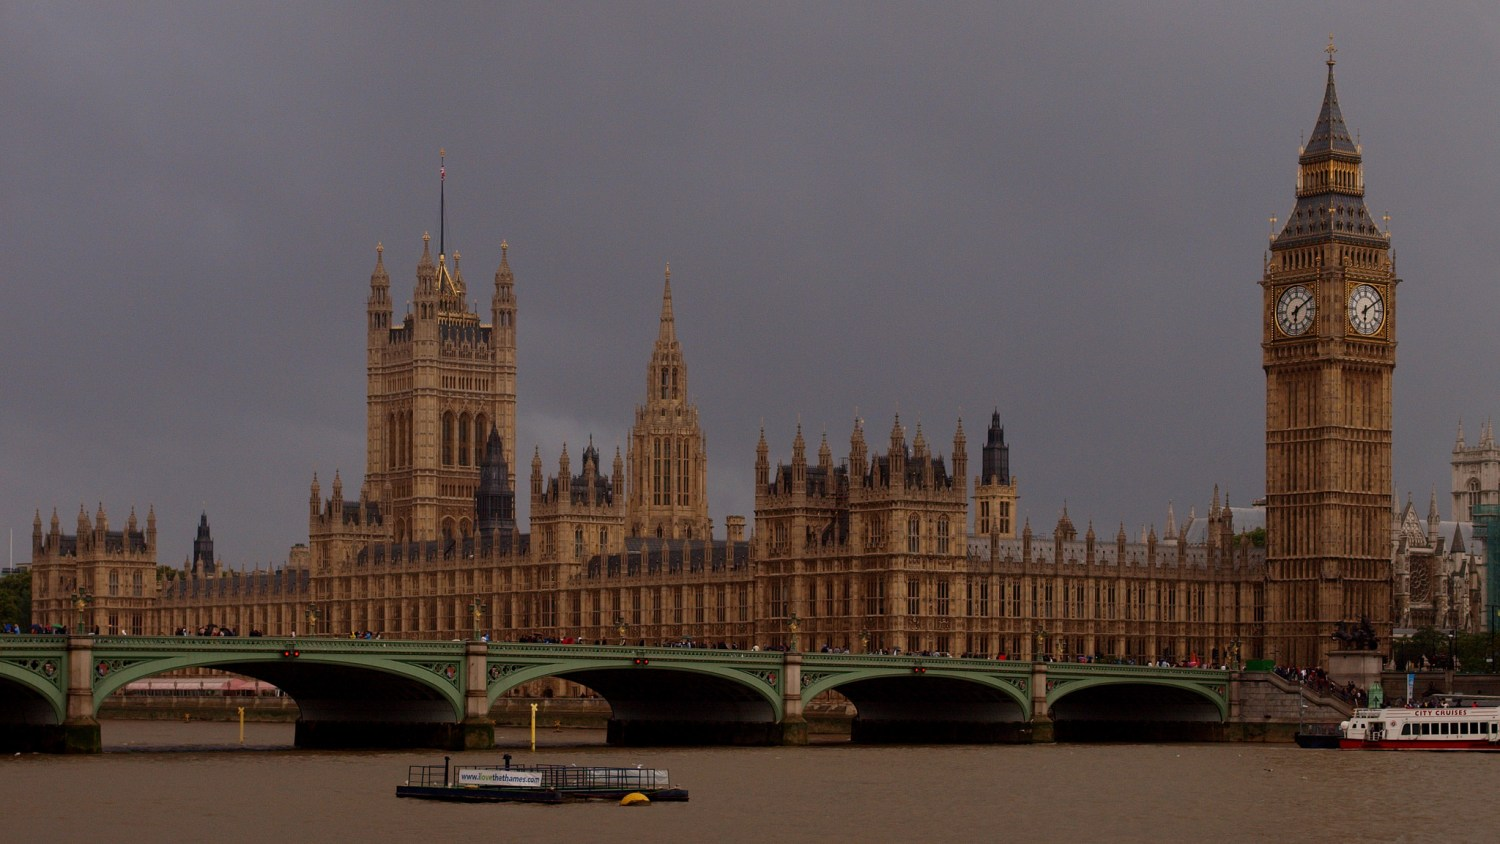 There was an attack at the Houses of Parliament and on Westminster Bridge (Wilson Hui)